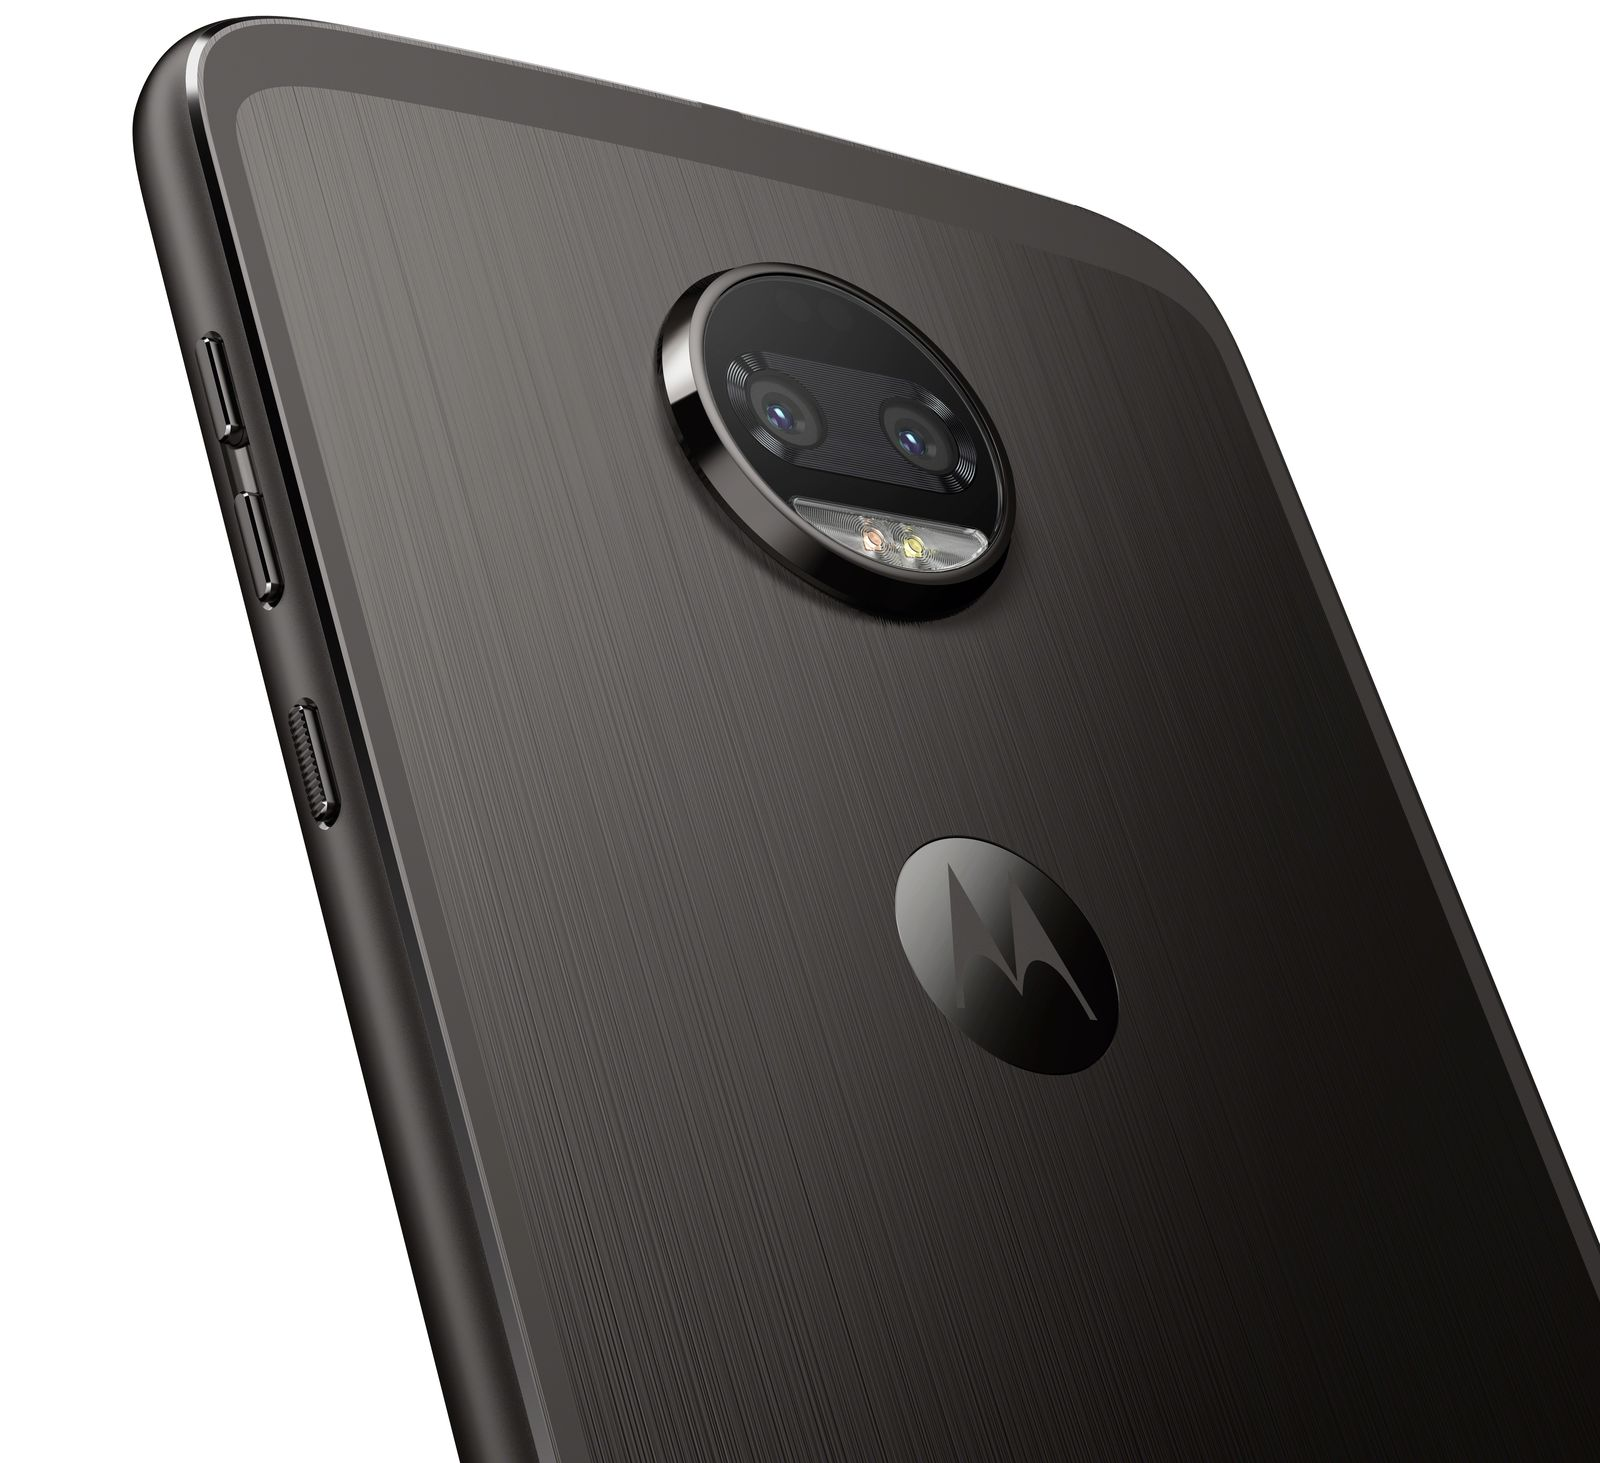 Lenovo announces the Moto Z2 Force with Snapdragon 835, new Mods